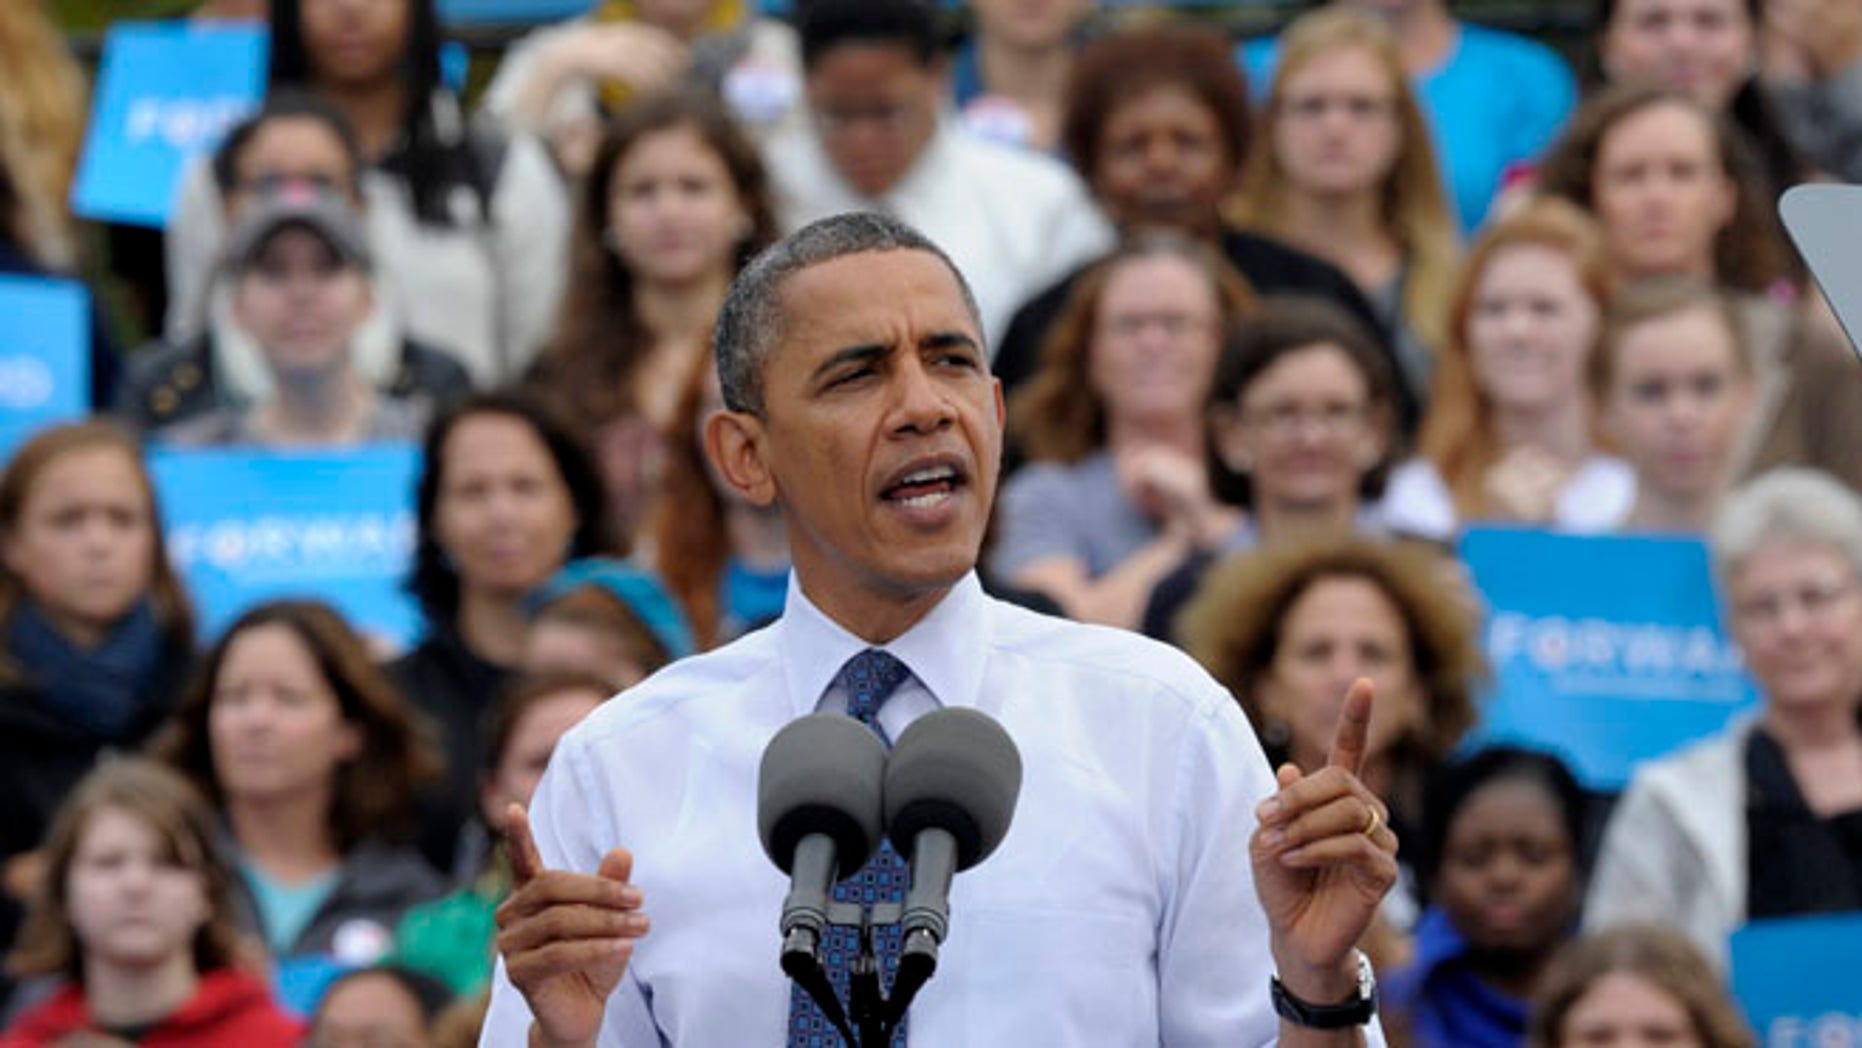 Oct. 19, 2012: President Barack Obama speaks about choice facing women in the election during a campaign event at George Mason University in Fairfax, Va.